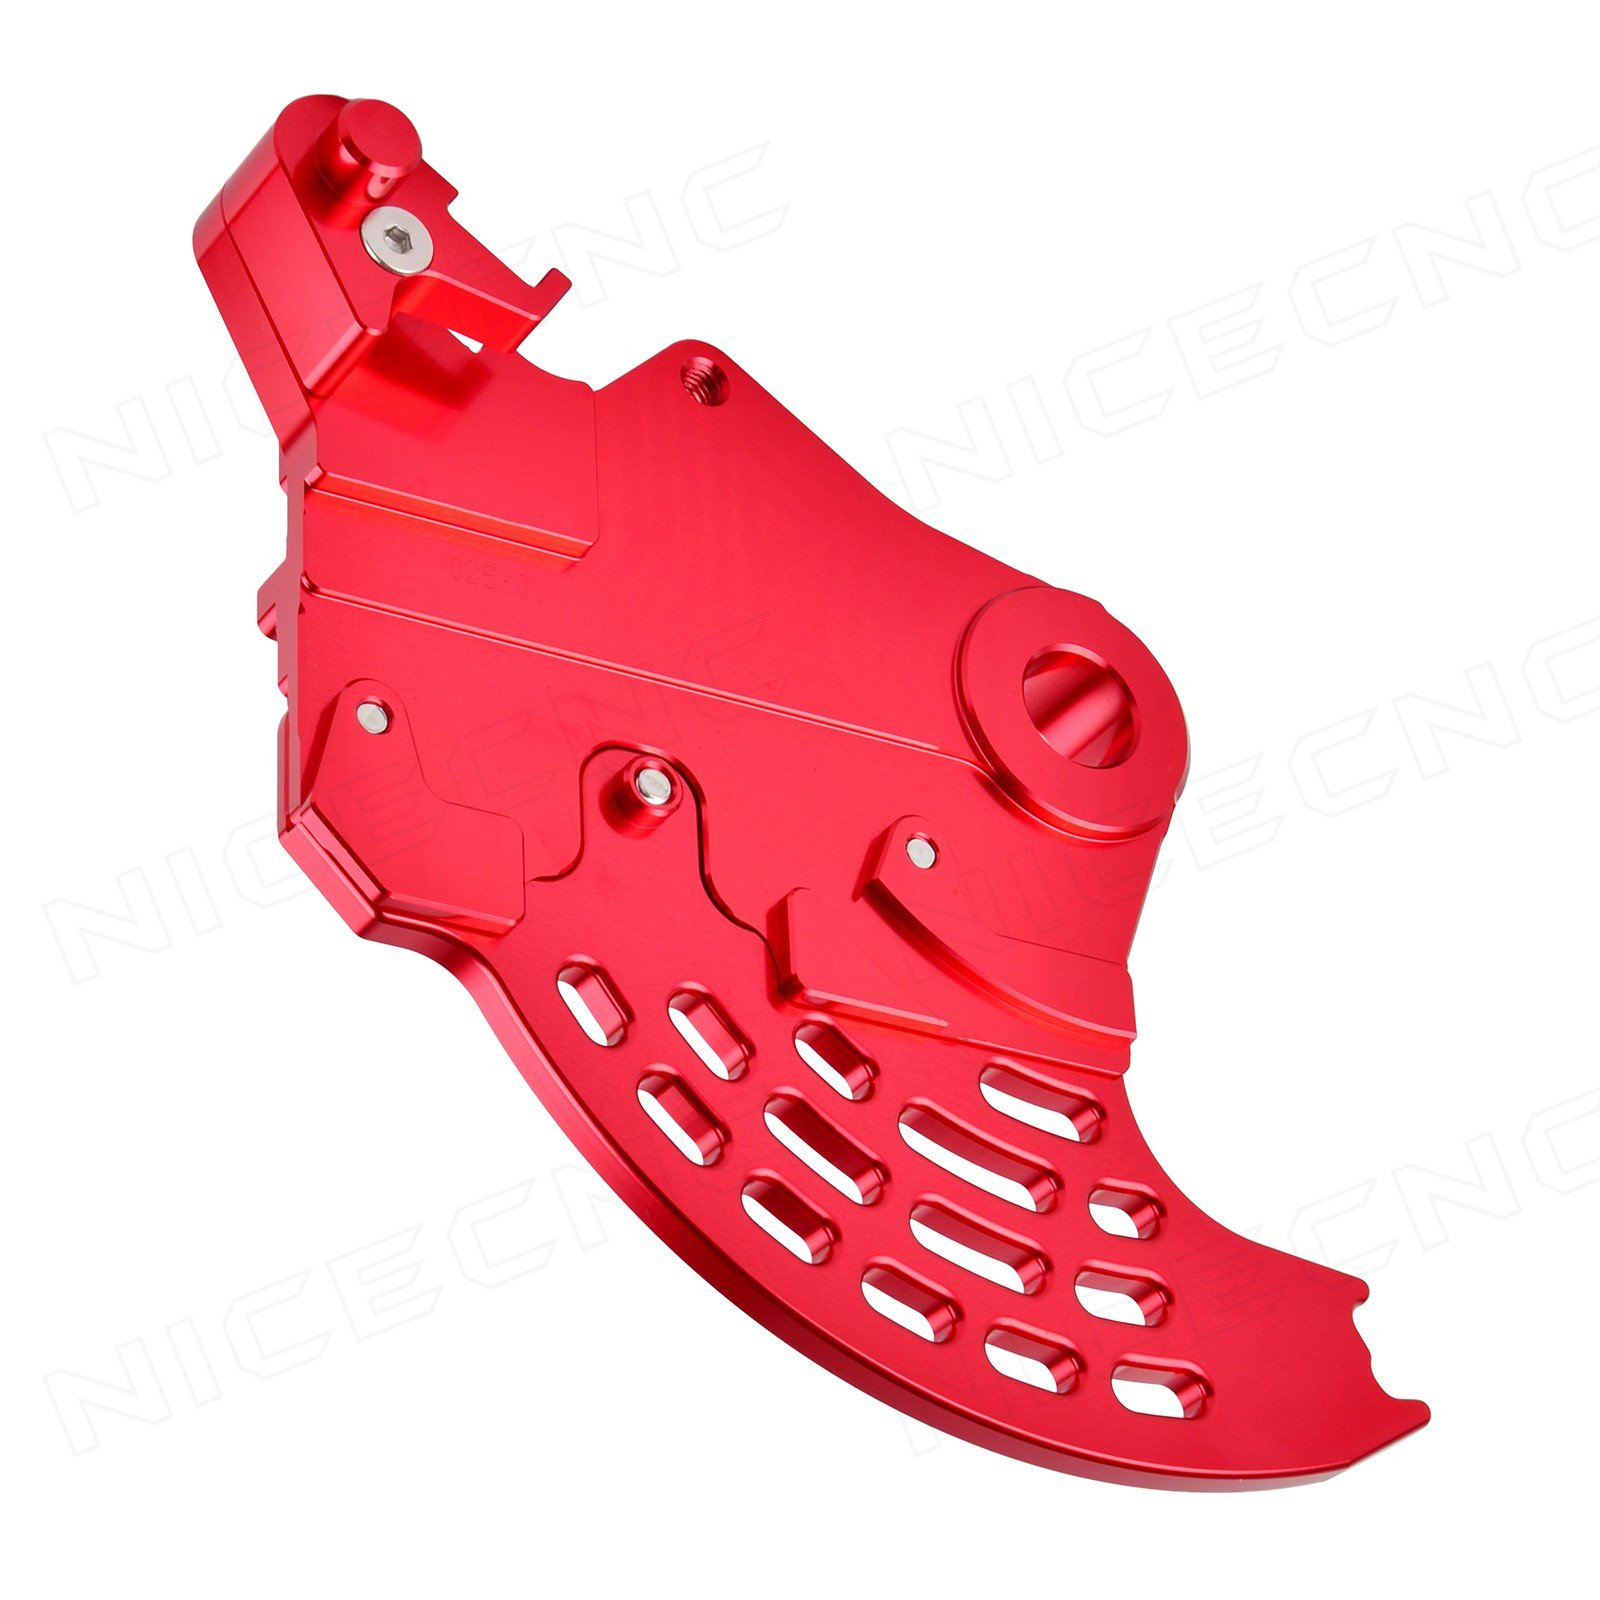 NICECNC Red Rear Brake Caliper Support With Brake Disc Guard for Beta RR/RS 2005-2018 Beta Xtrainer 300 2015 2016 2017 2018